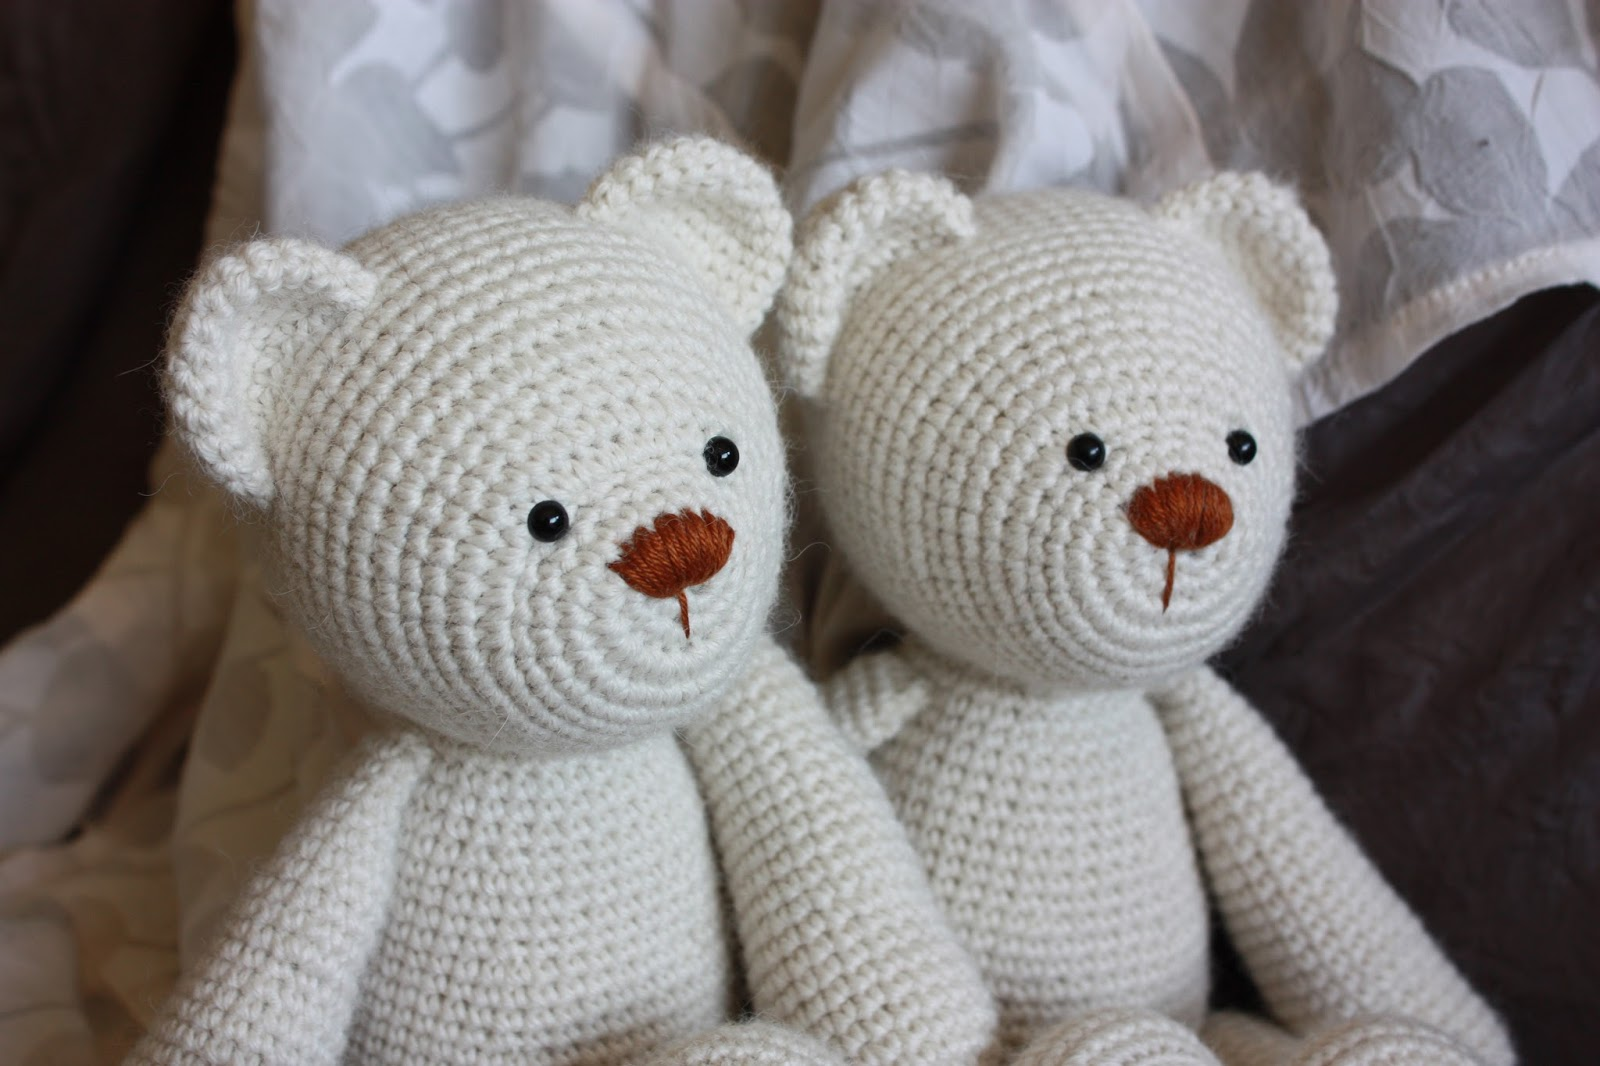 Amigurumi Teddy Bear Free Patterns : Happyamigurumi: lucas the teddy bear pattern: new teddy bear friends